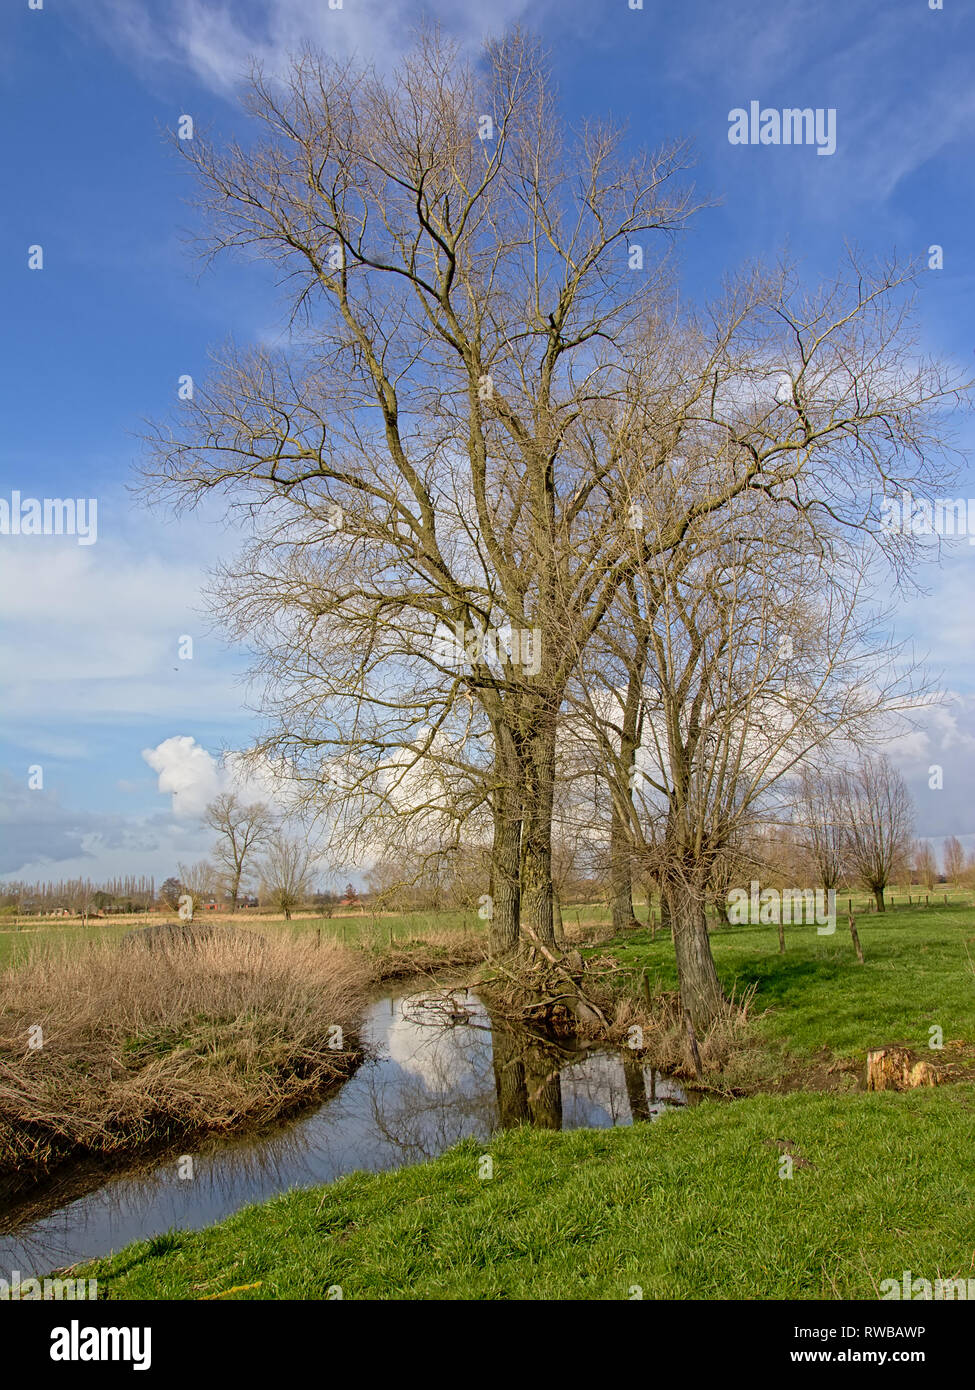 Flemish landscape with bare trees and a ditch on a blue sky with soft fluffy clouds in Oude Kalevallei nature reserve . - Stock Image